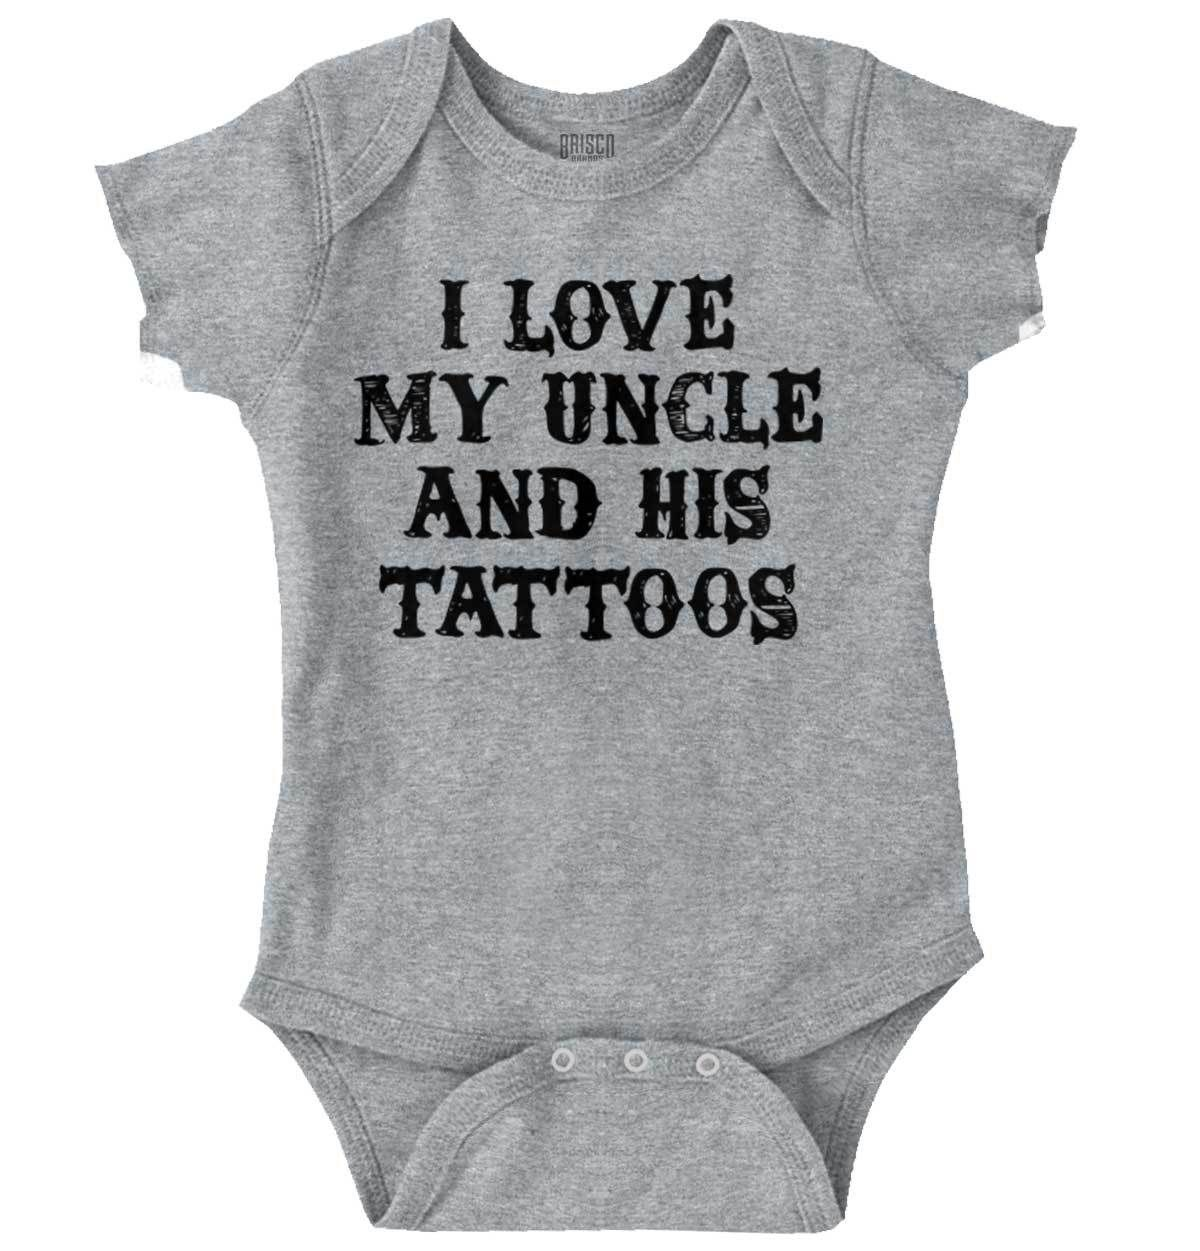 Uncle's Tattoos Romper Bodysuit (With images) Cute baby